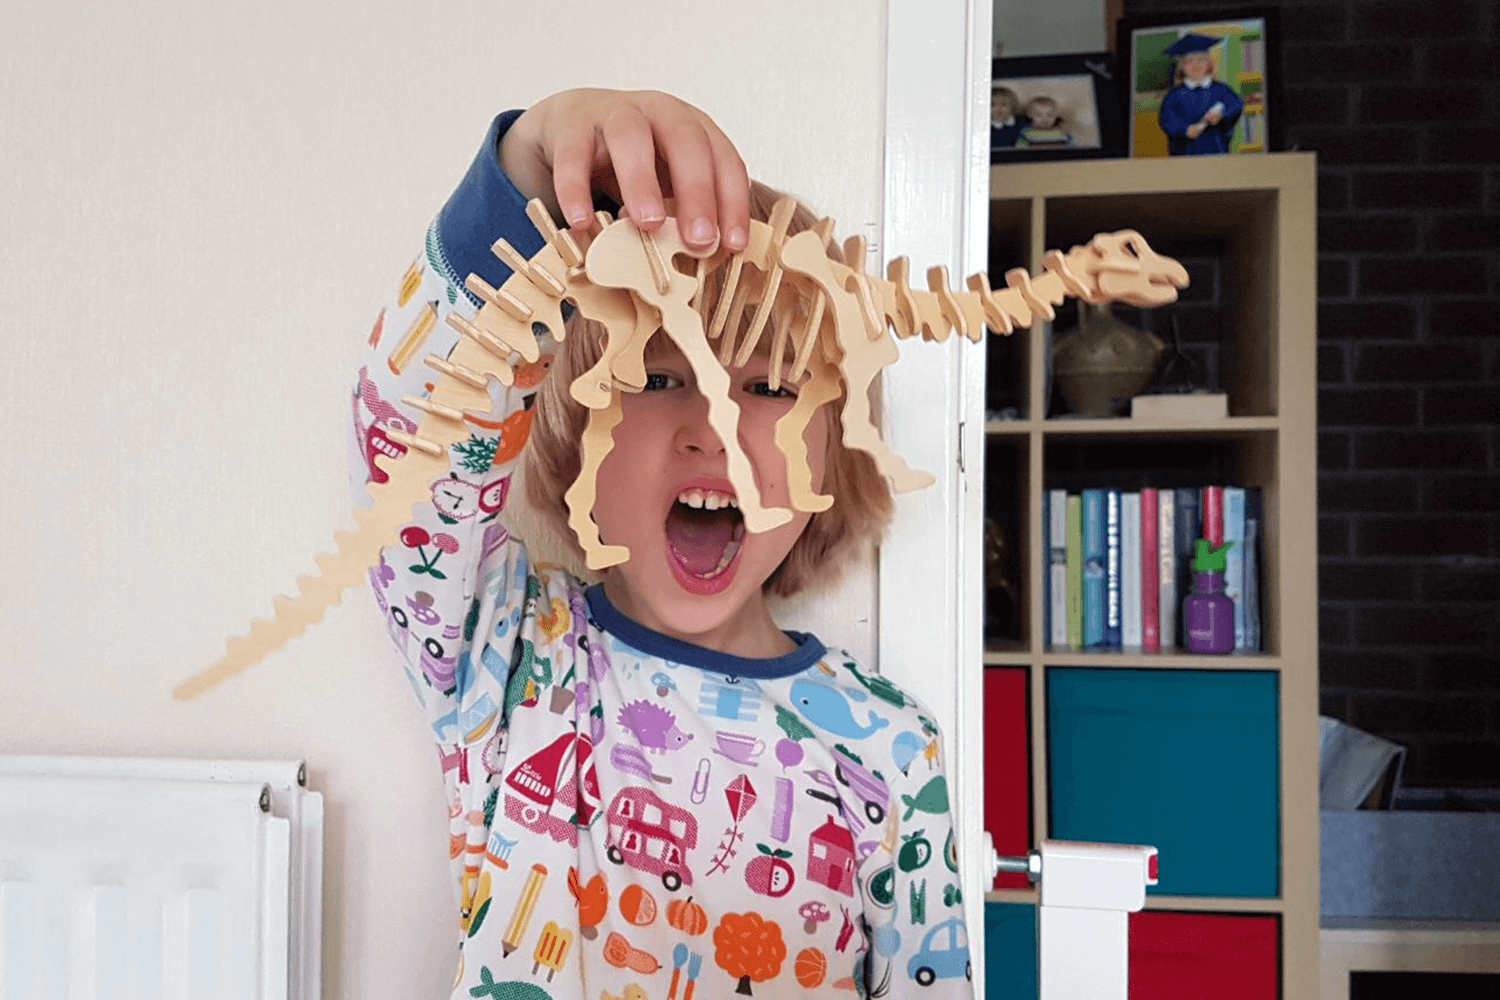 Toby and his dinosaur skeleton model